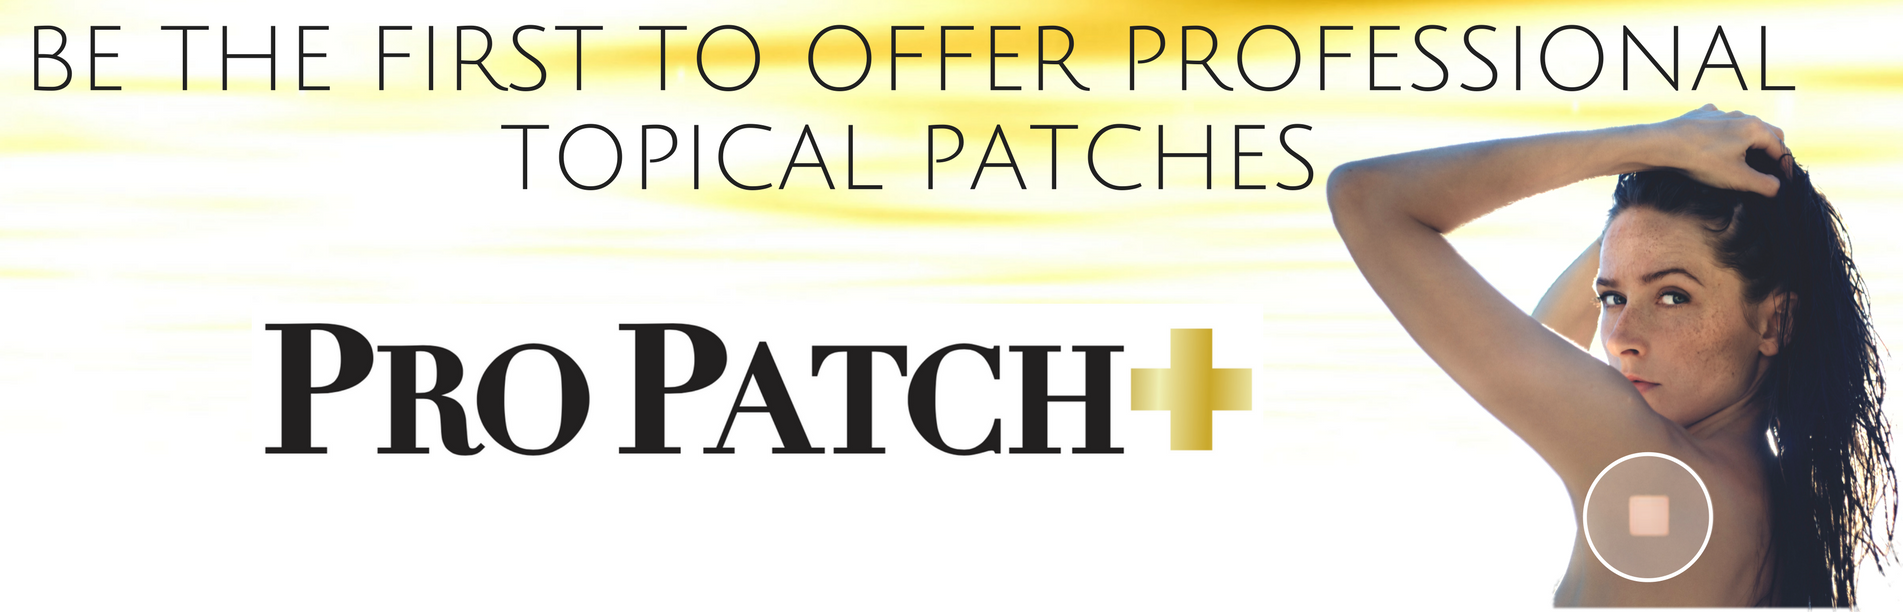 Professional Topical Patches